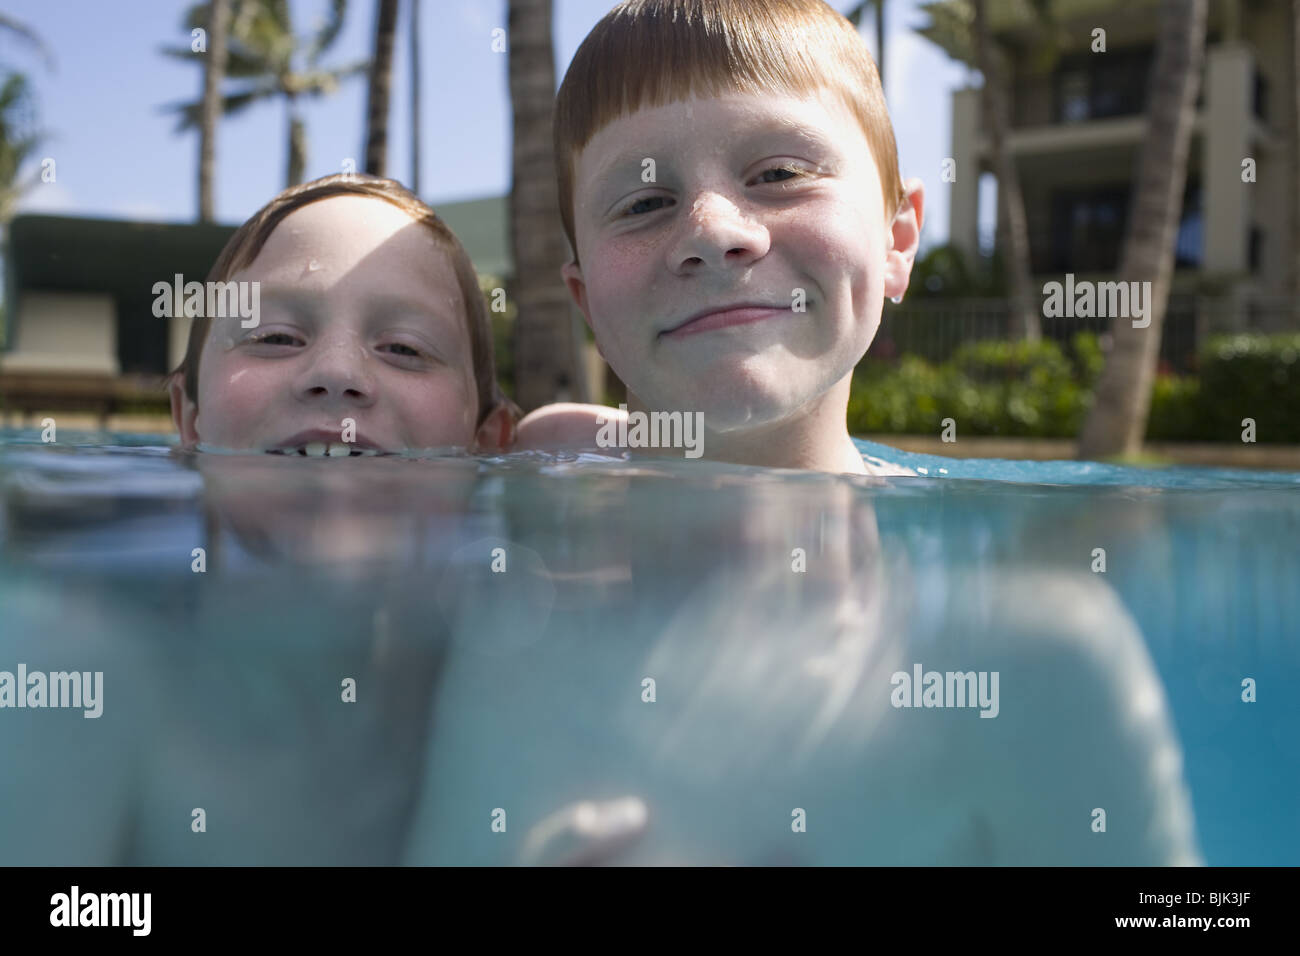 Two boys in outdoor pool smiling - Stock Image